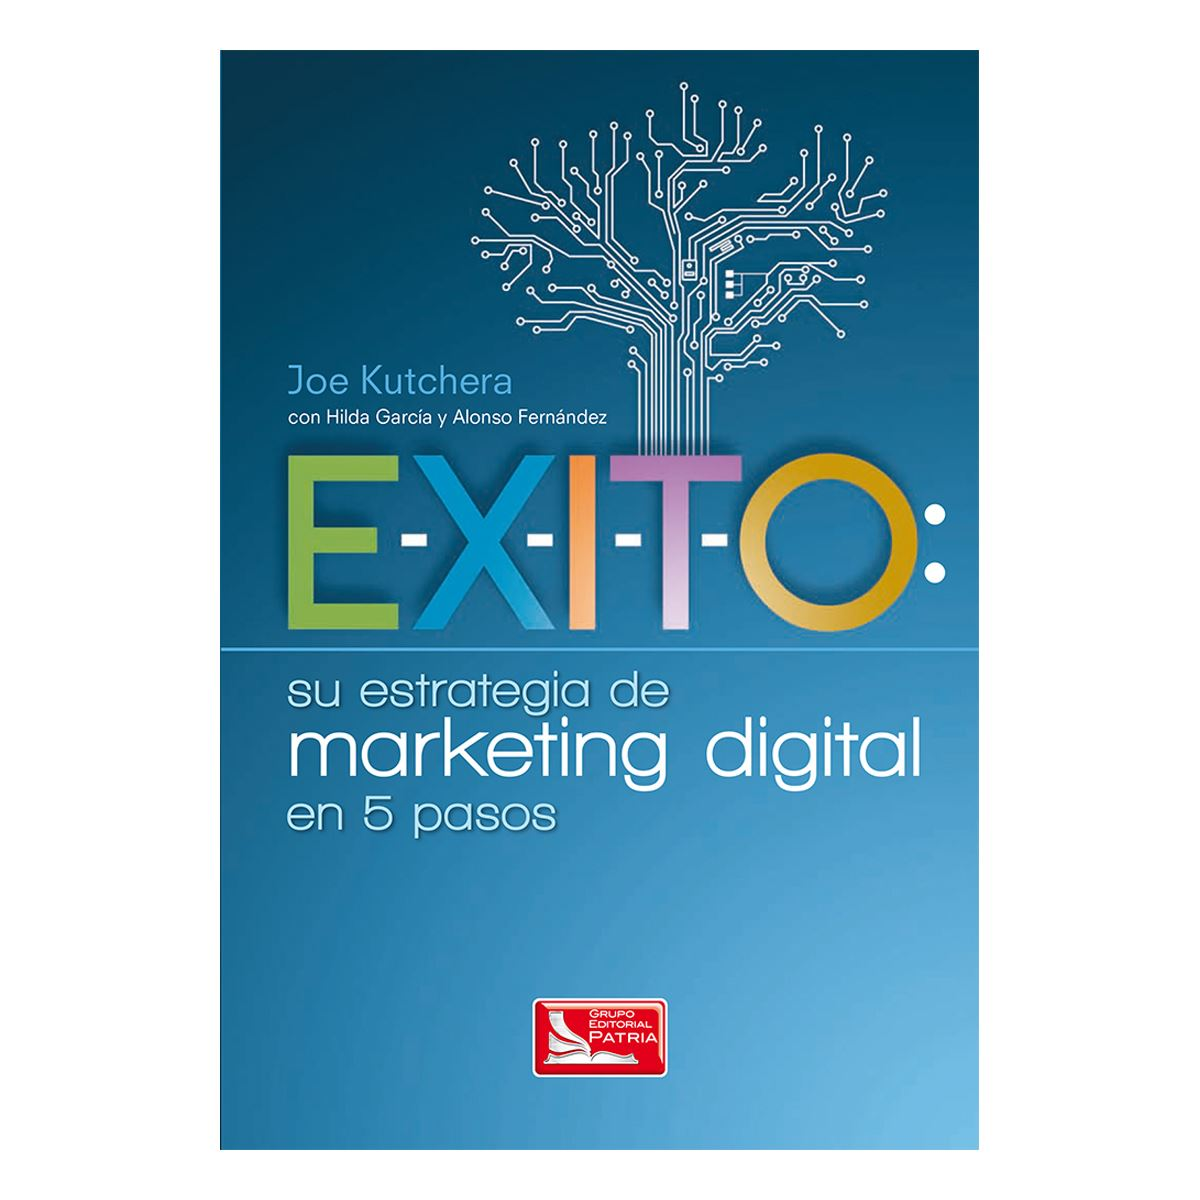 E-X-I-T-O su estrategia de marketing digital